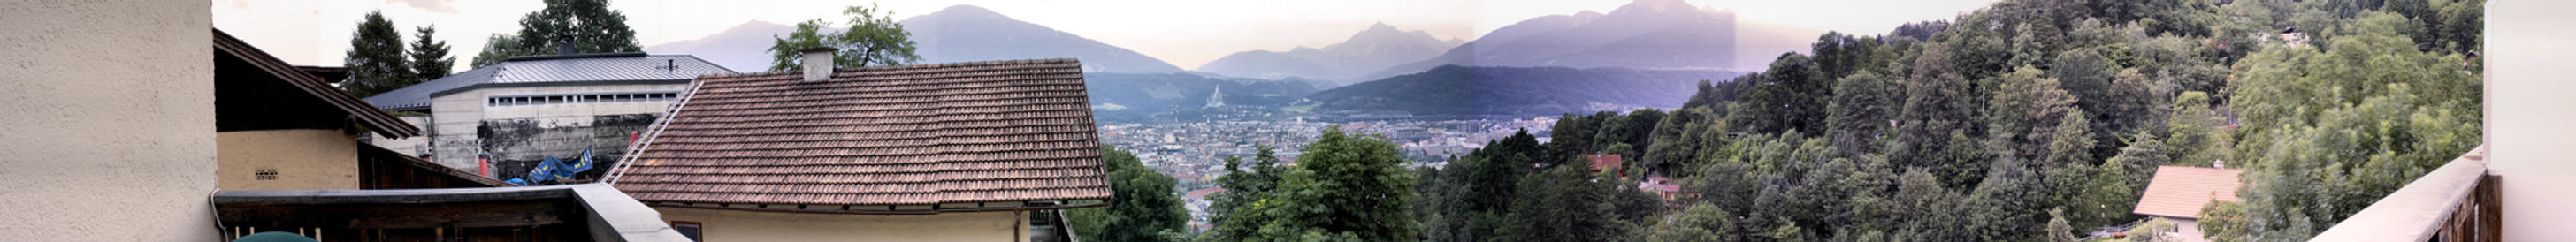 Innsbruck panorama by tails2k4